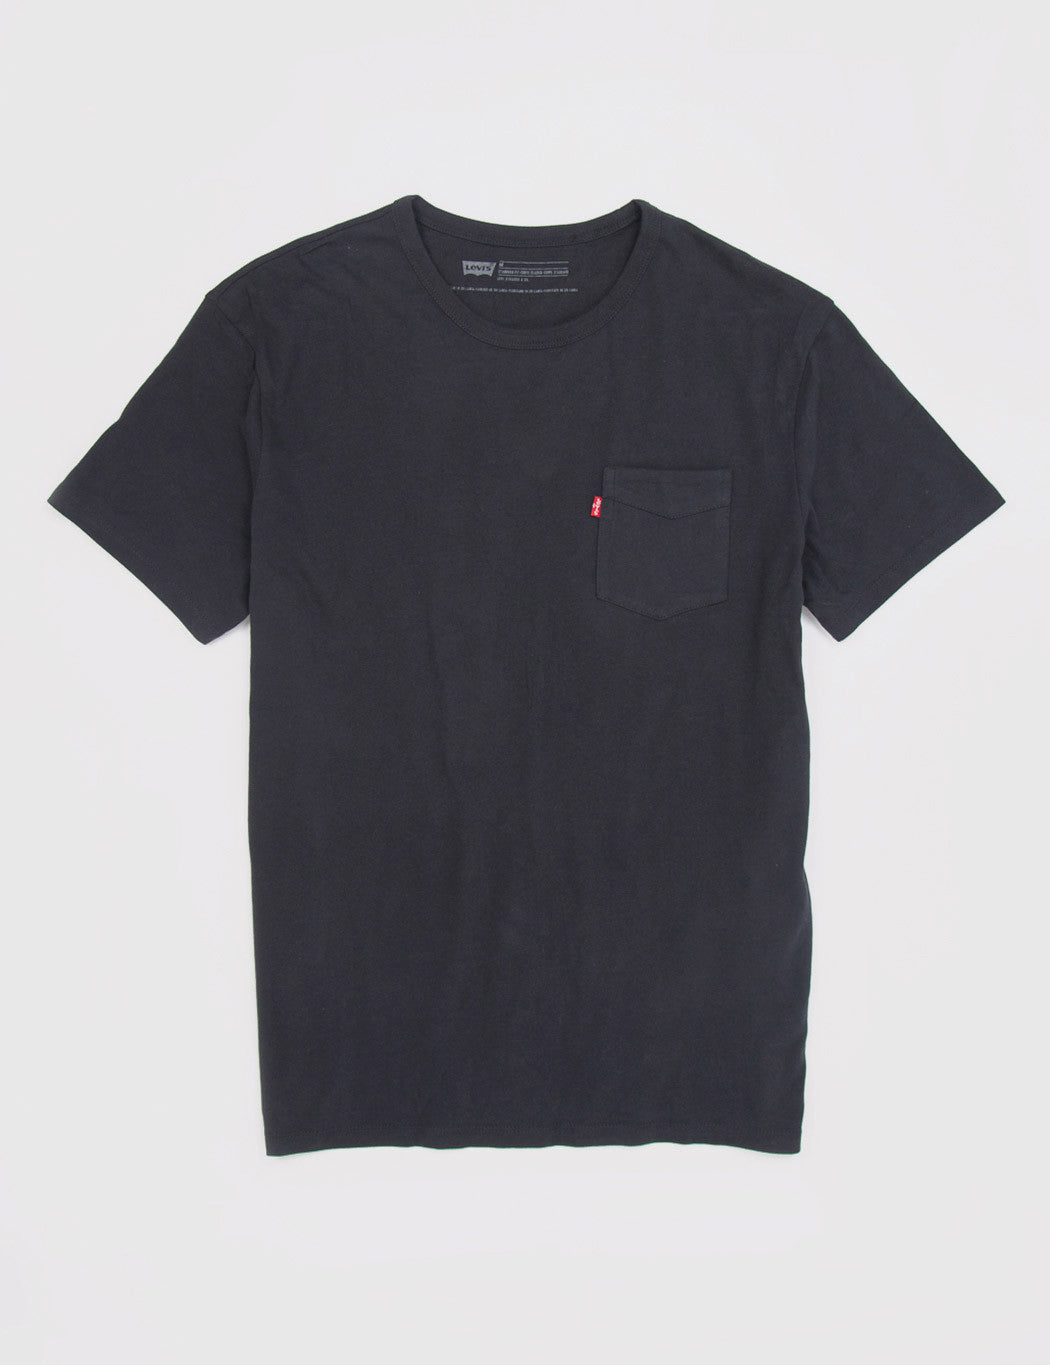 Levis Sunset Pocket T-Shirt - Black